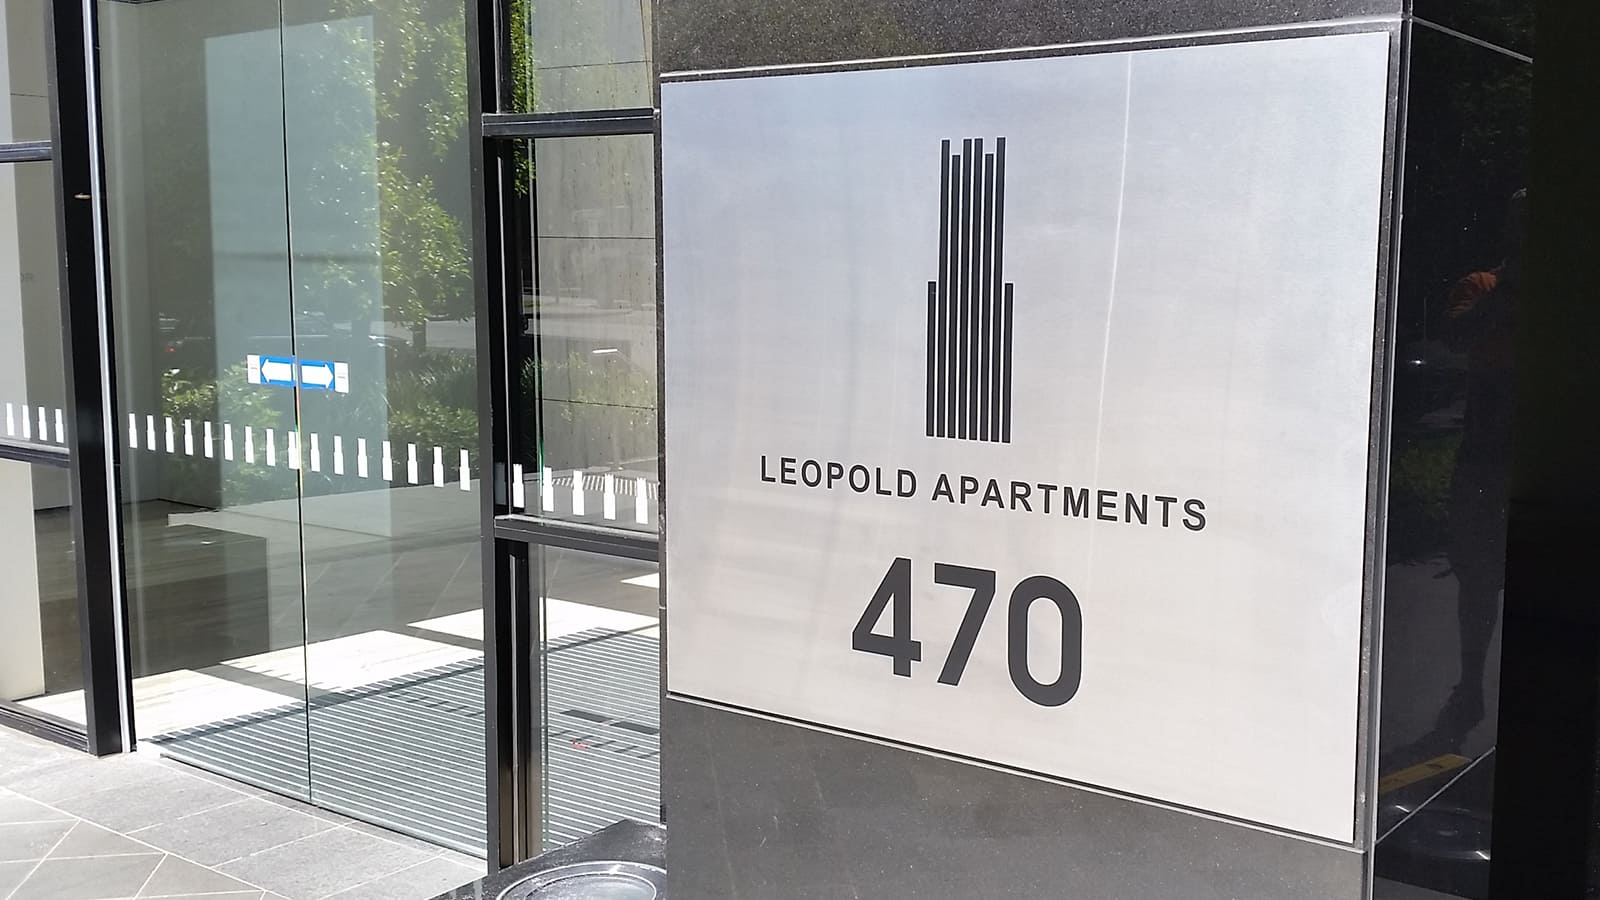 architectual-leopold-apartments